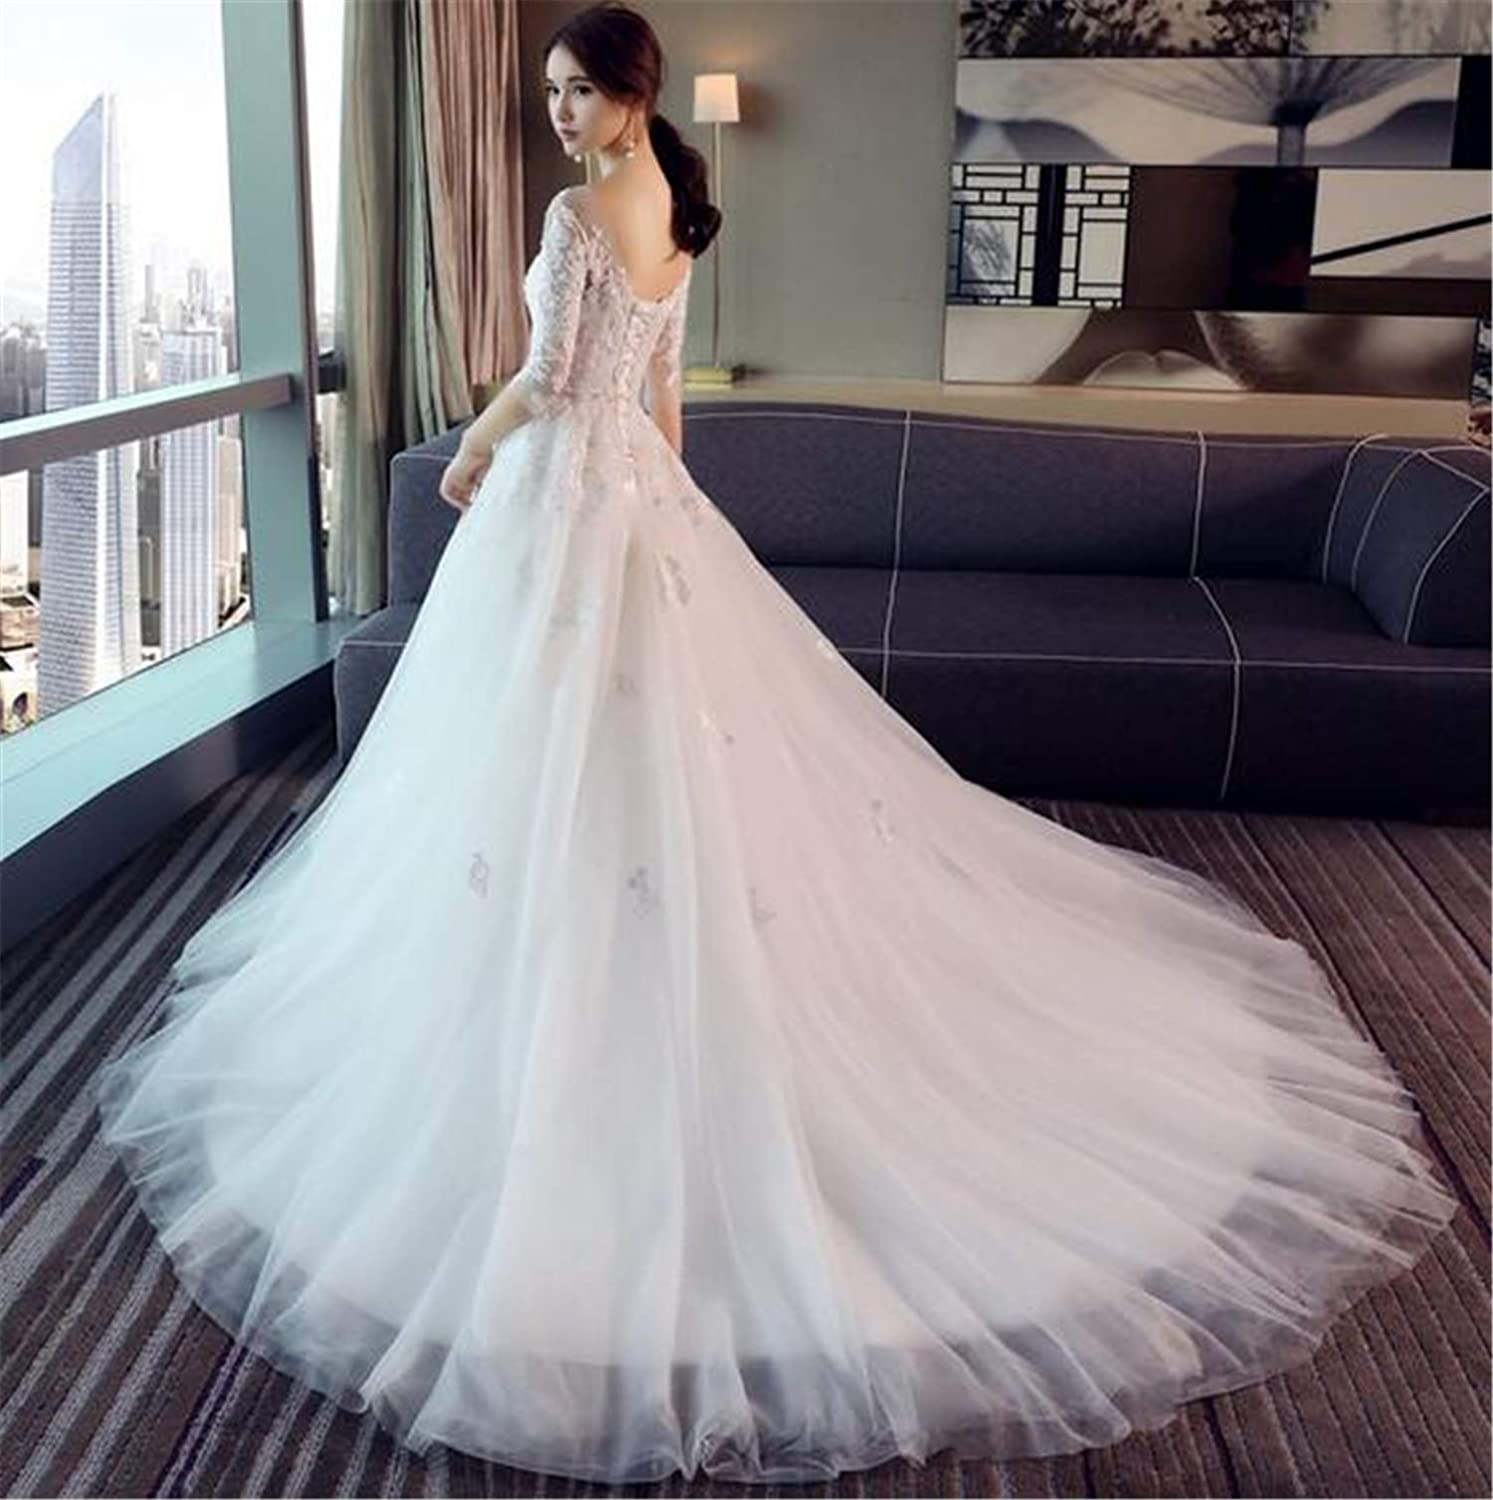 Wedding Dress, Bride Marry Party Birthday Evening Dress Sexy Lace Embroidery Trailing Long Sleeve ThreeDimensional Flower Slim Tulle